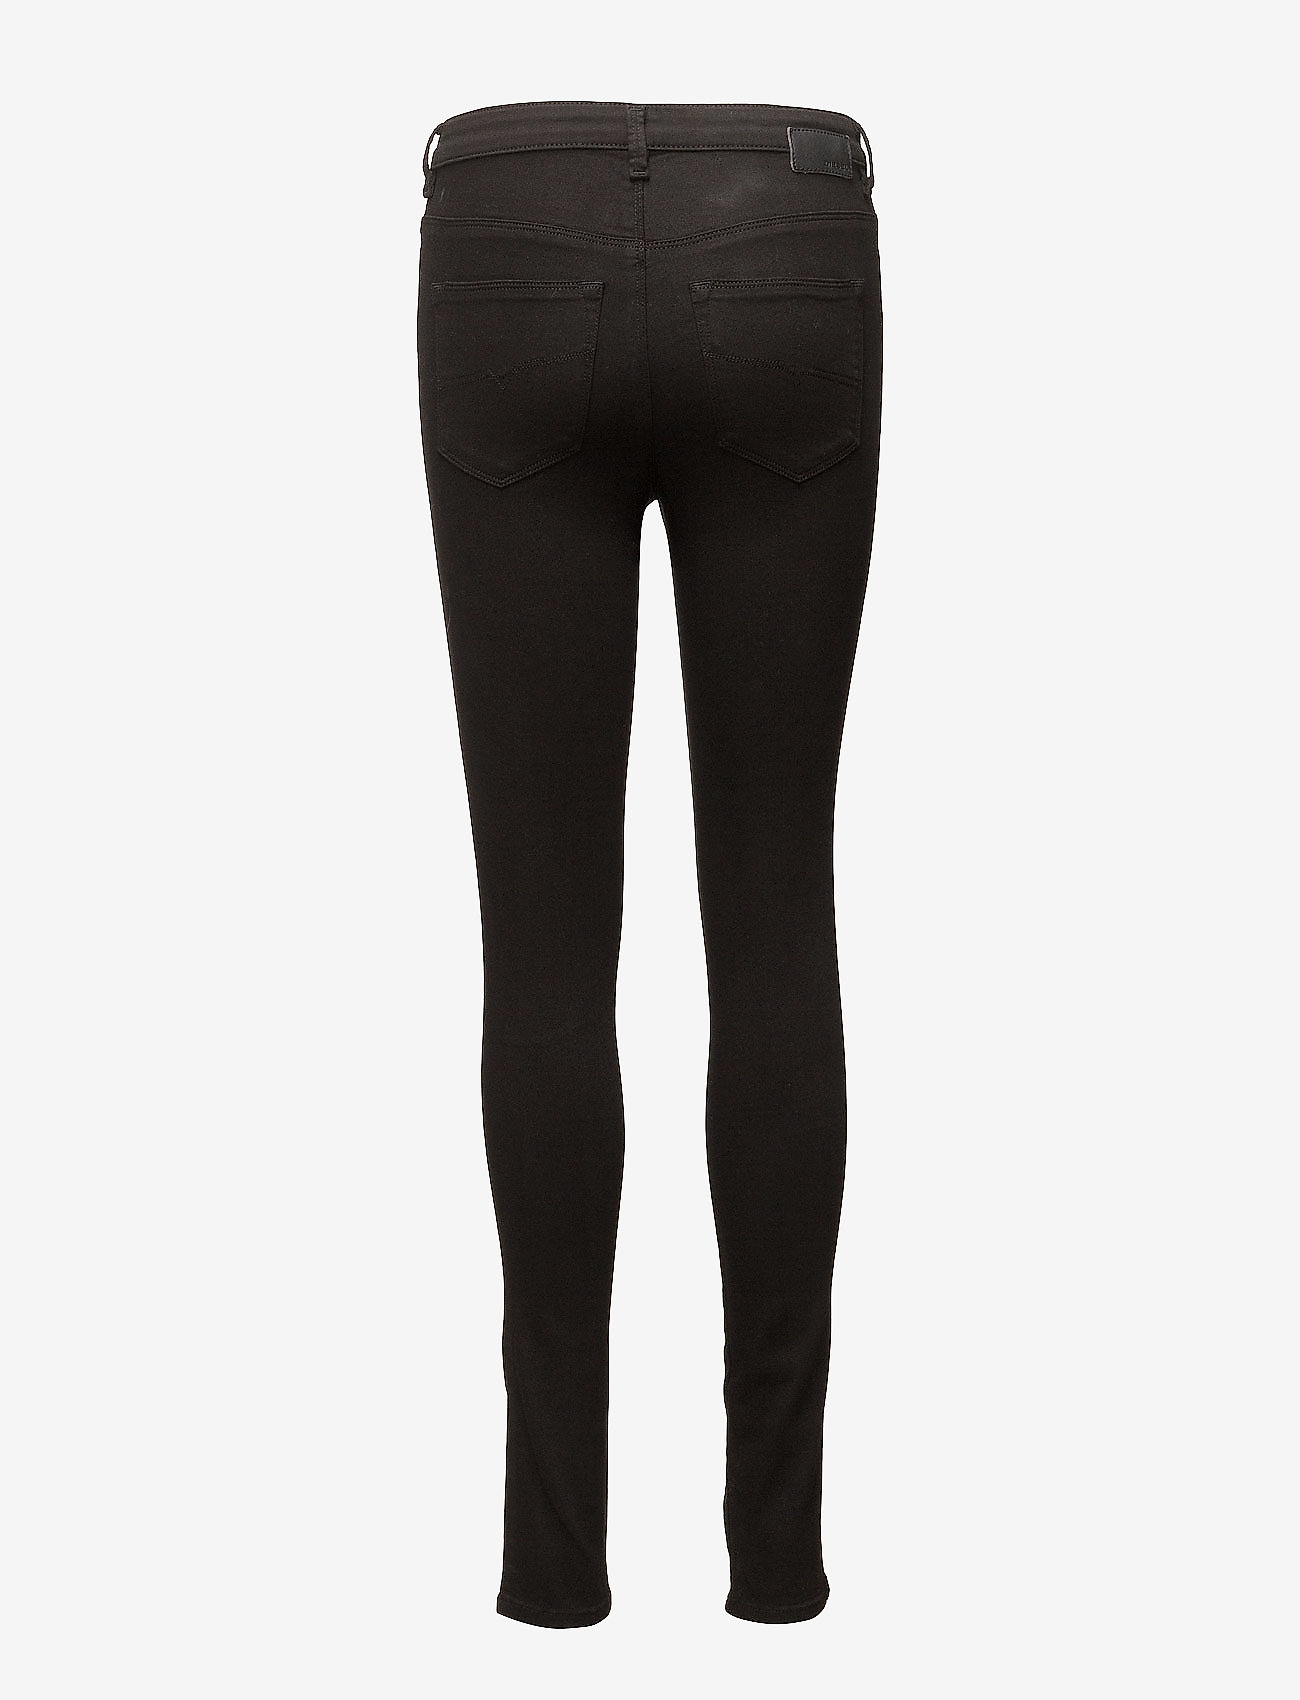 Diesel Women - SKINZEE-HIGH TROUSERS - dżinsy skinny fit - black/denim - 1